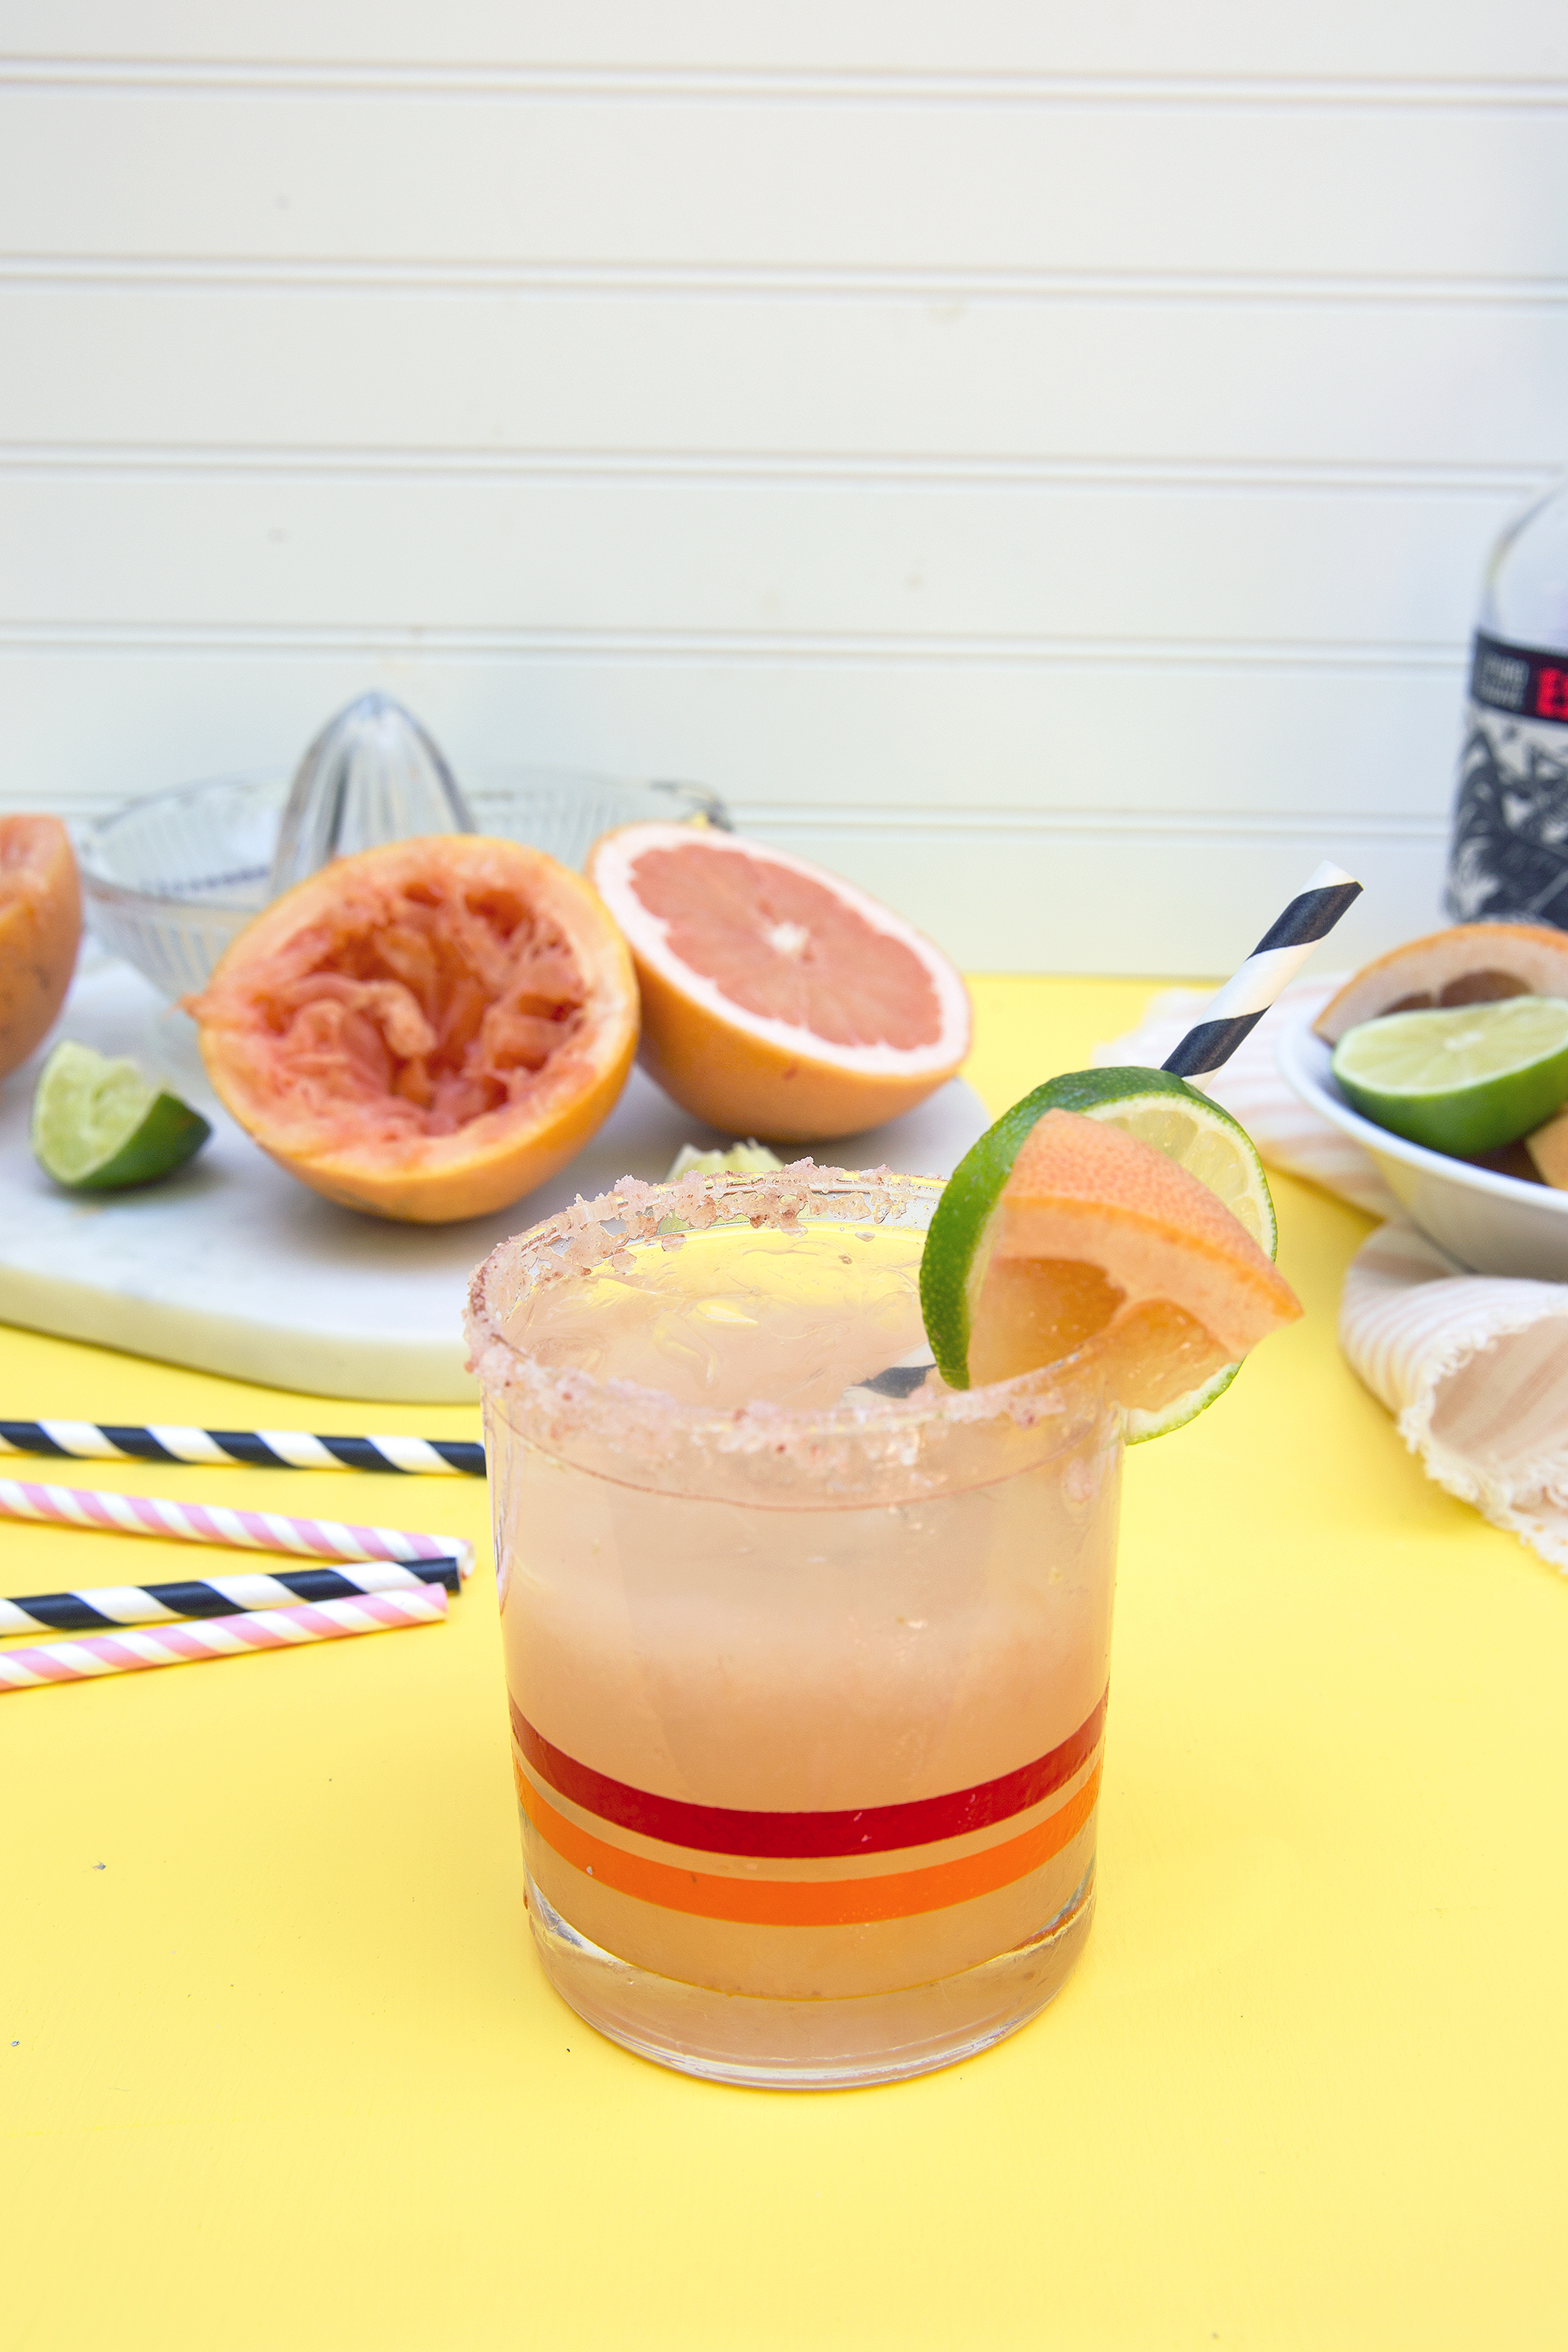 Paloma Cocktail made from grapefruit juice, tequila, and seltzer. UnusuallyLovely.com